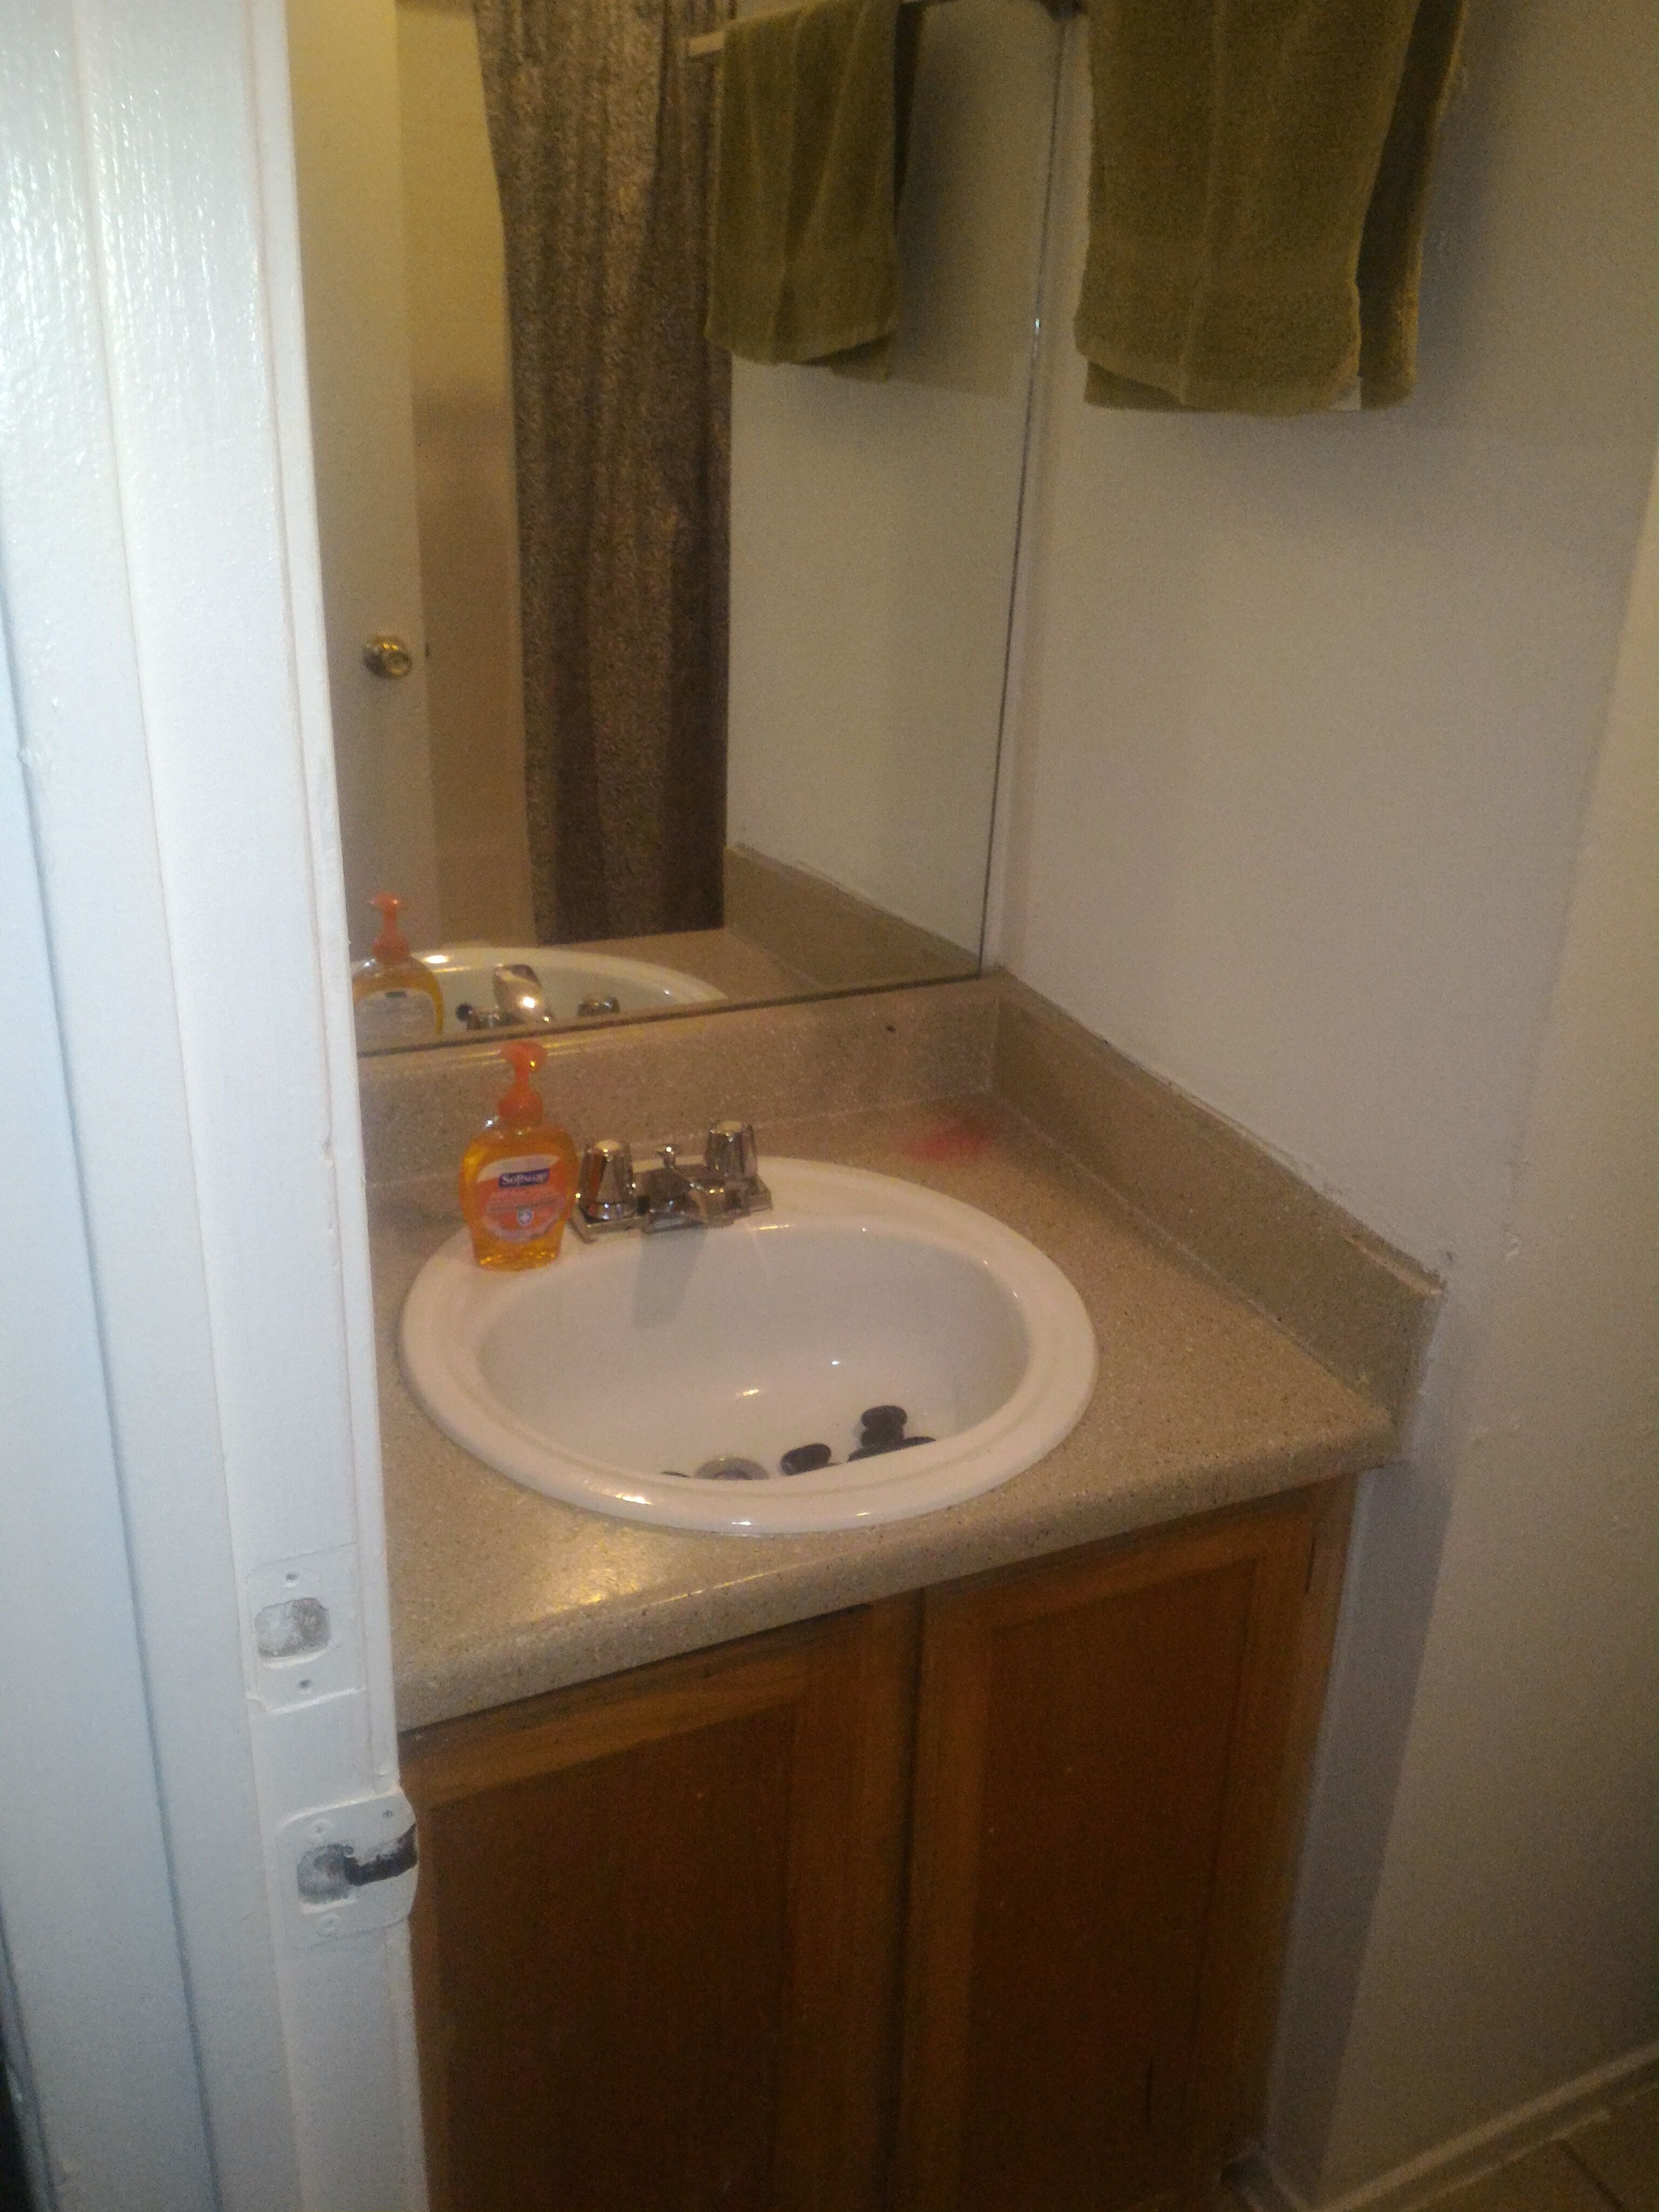 Bathroom Sinks Houston Texas property for rent in houston, tx - turbo tenant - the easiest